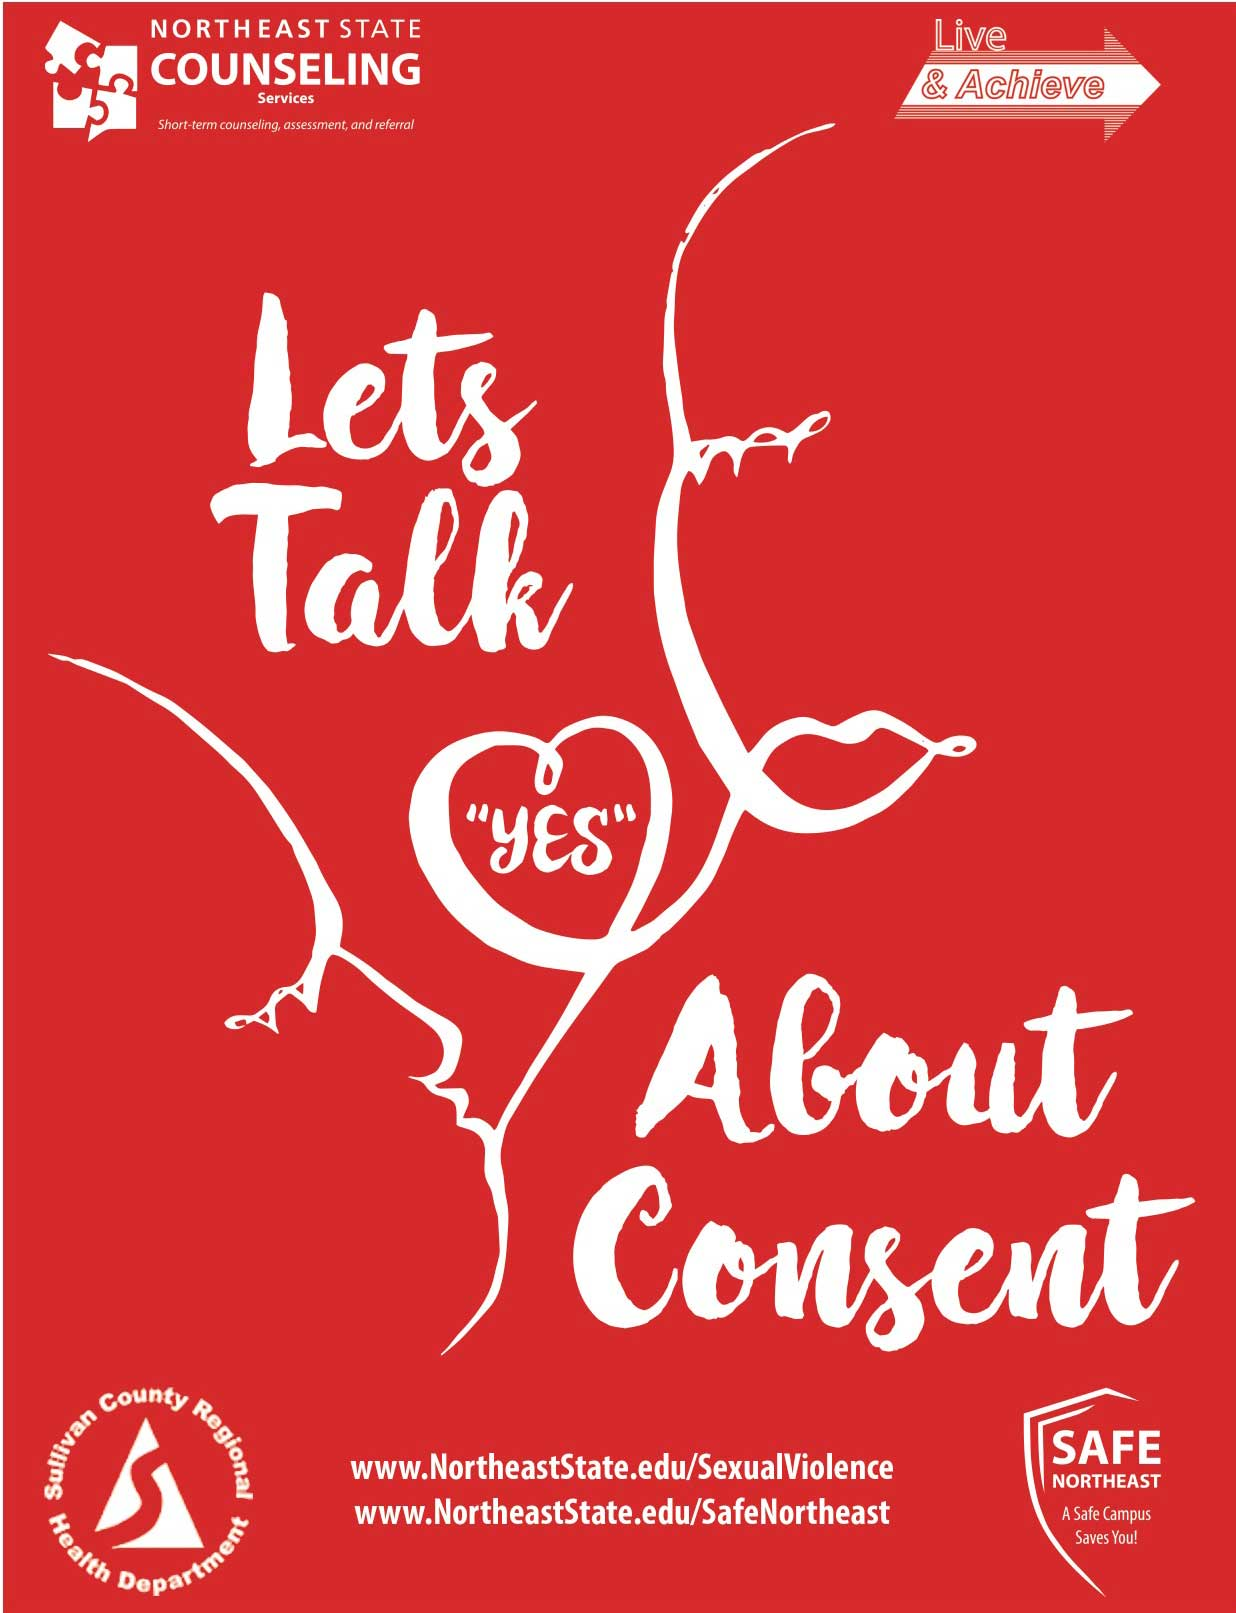 Lets talk about consent